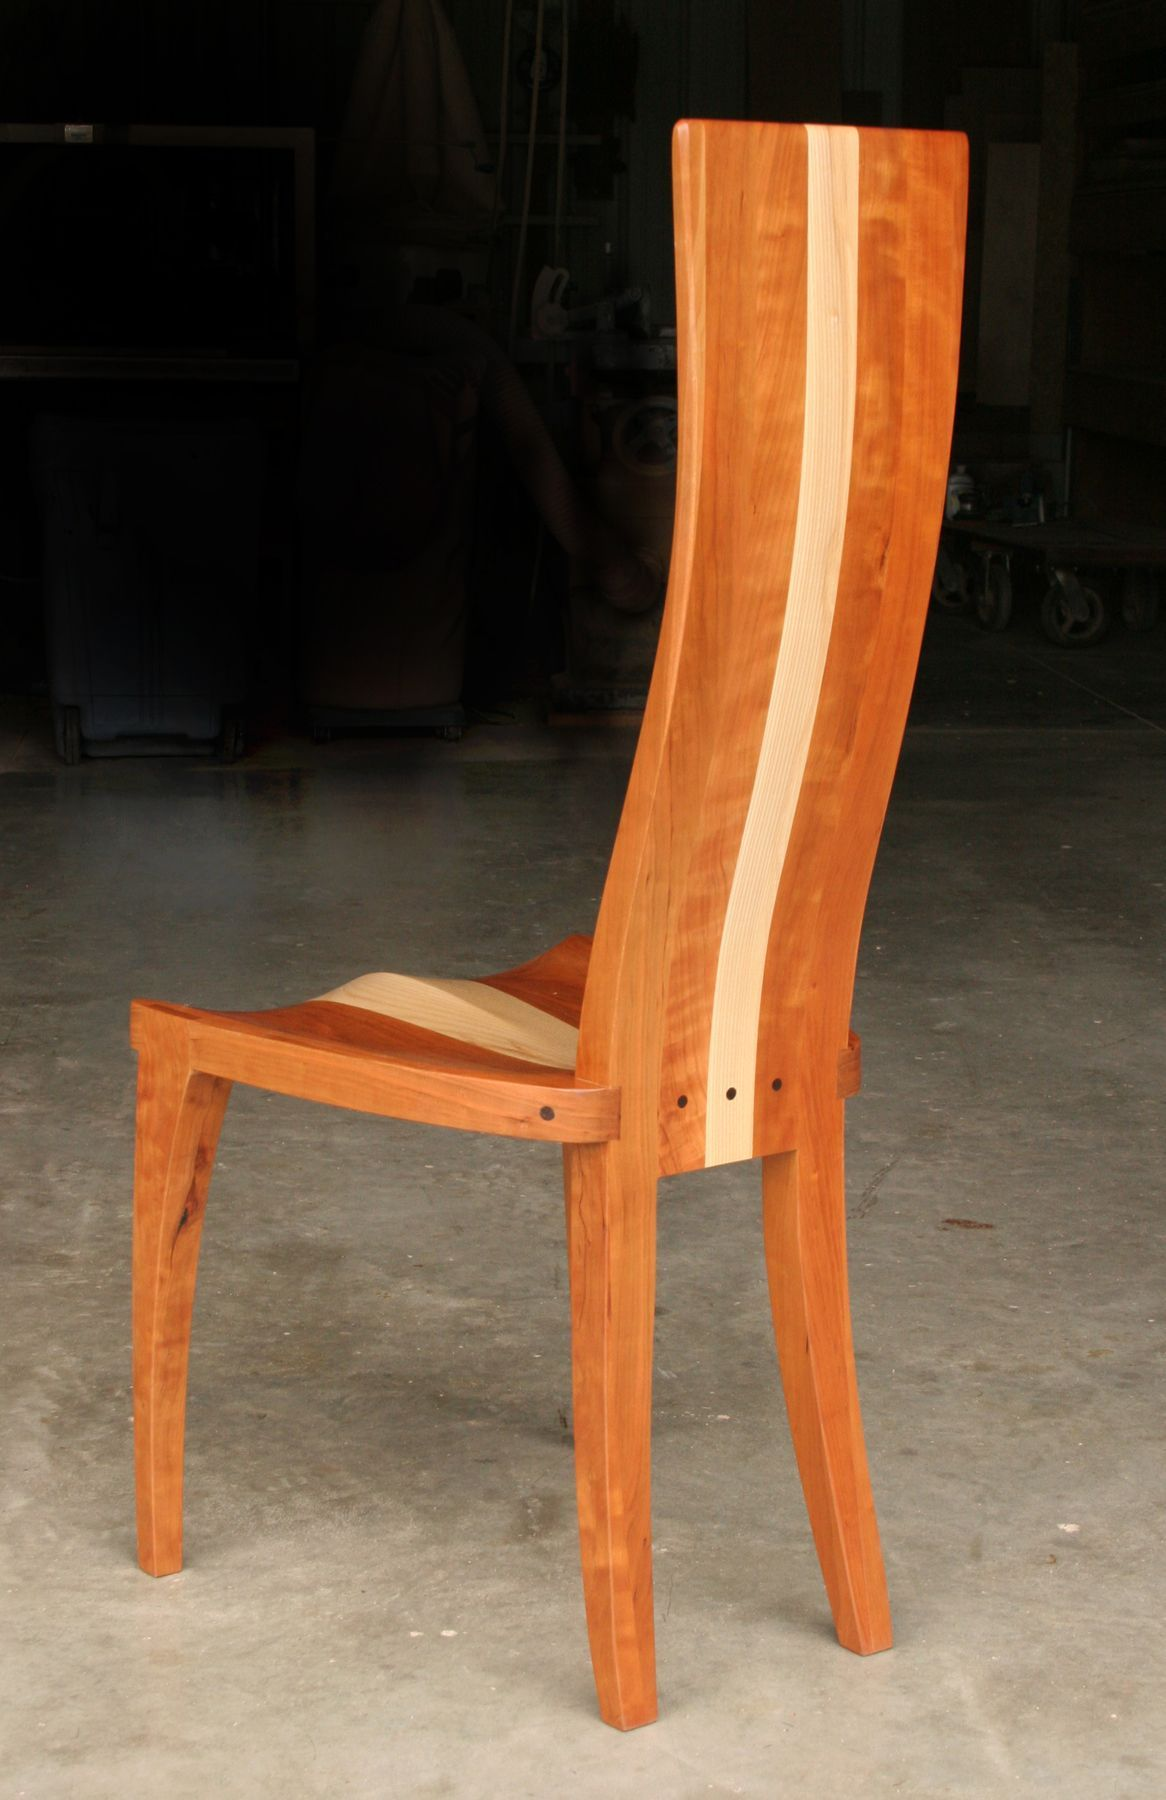 Curved Back Dining Room Chairs Fair Custom Made Modern Wood Dining Room Chair With Carved Seat Design Decoration